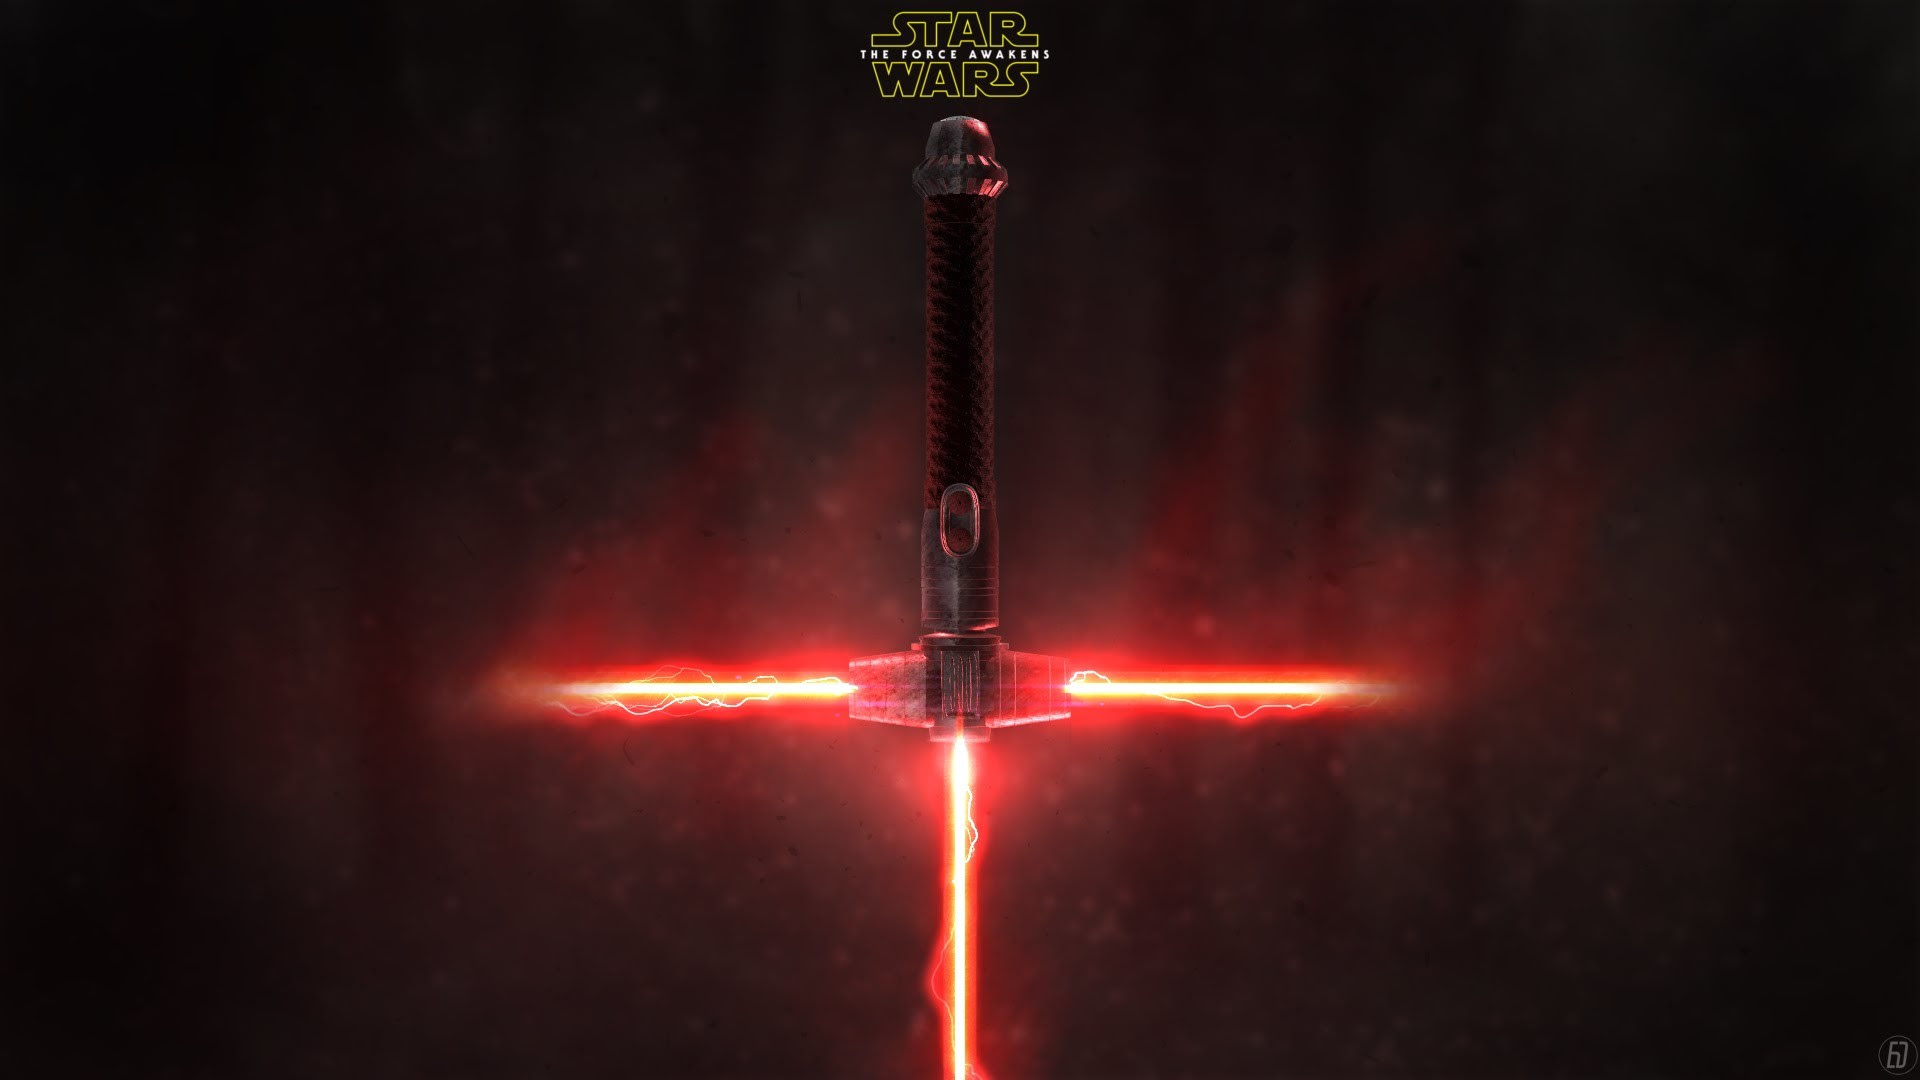 Hd Lightsaber Wallpaper 72 Images